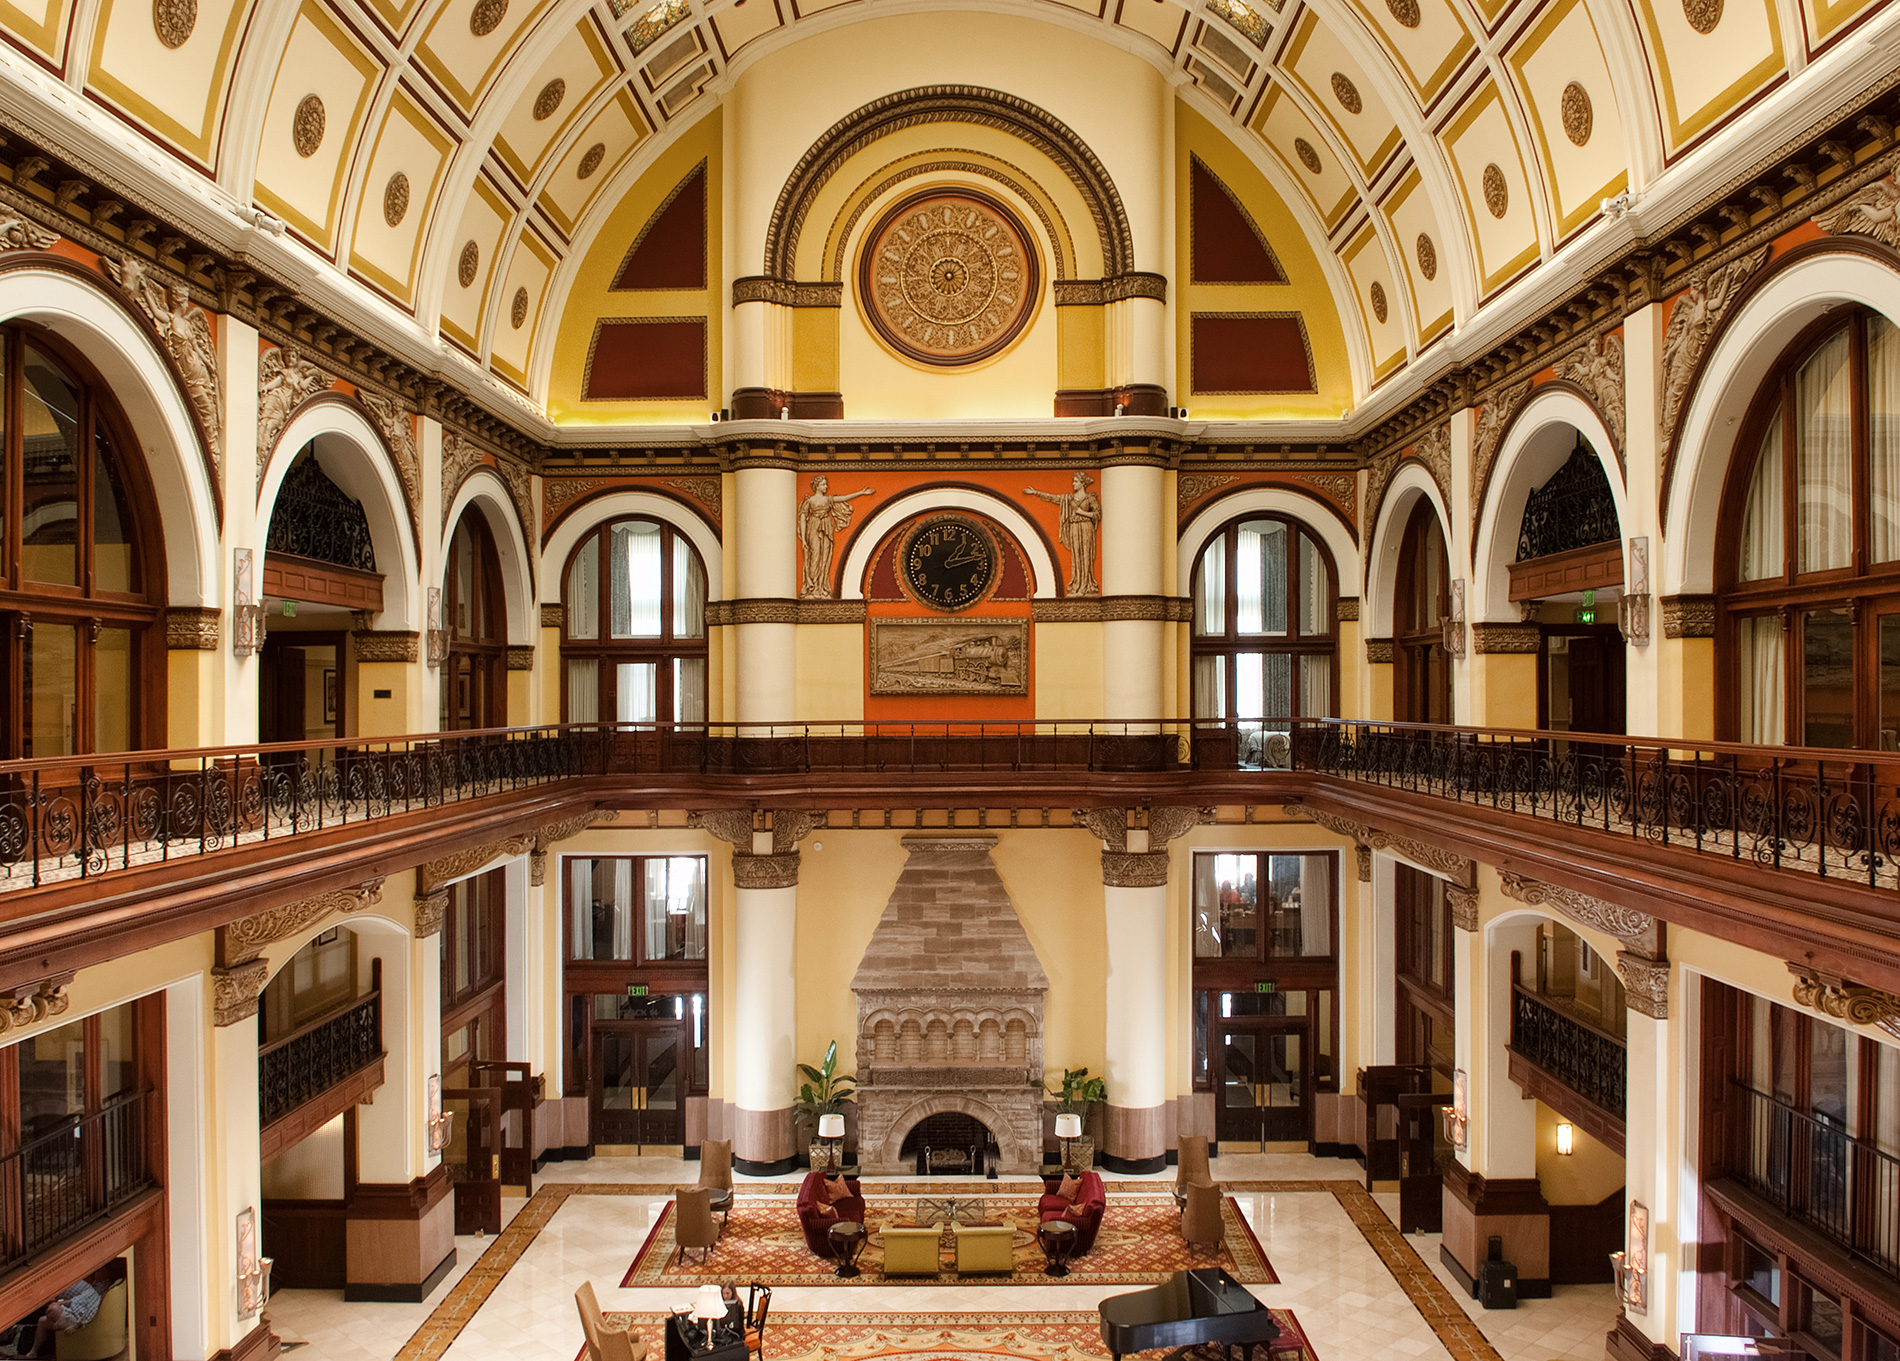 Interior view of the Union Station Hotel